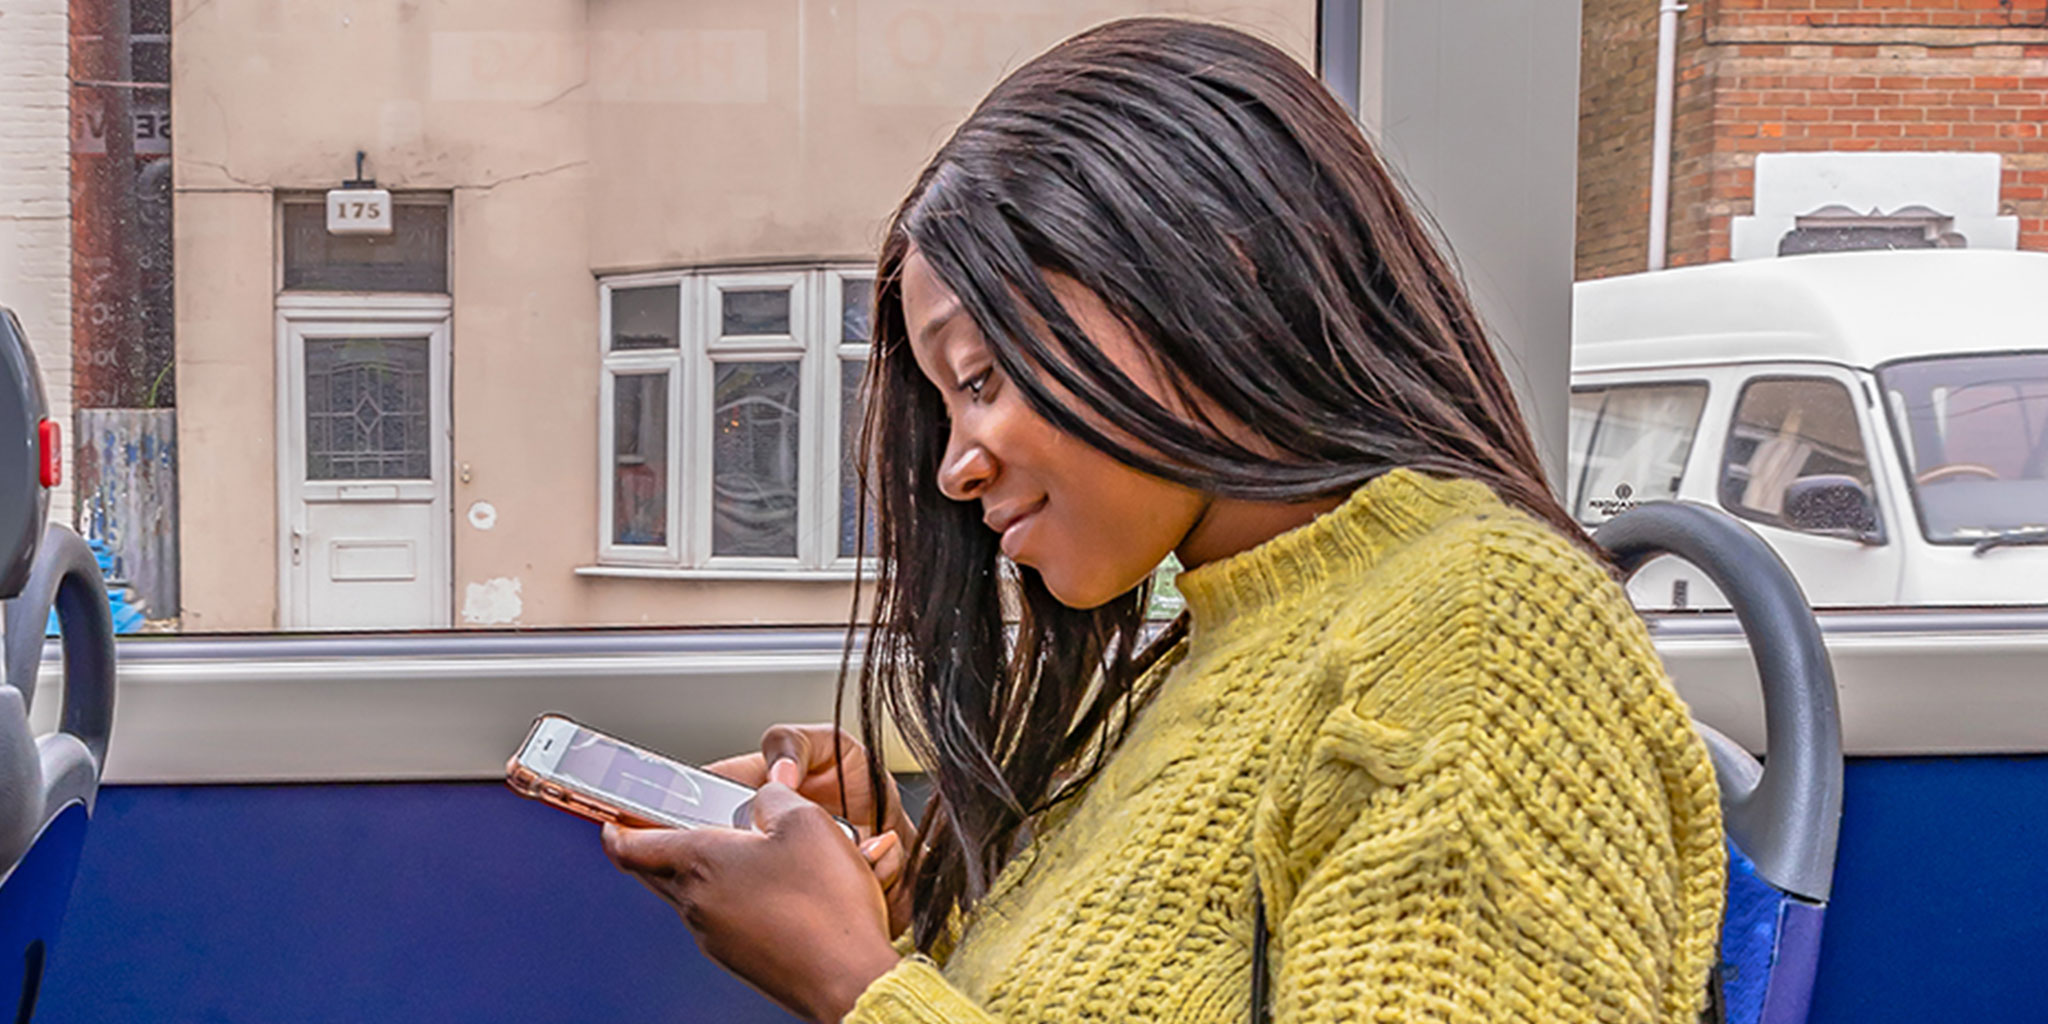 Photo of a lady using on-board bus Wi-Fi on her mobile phone